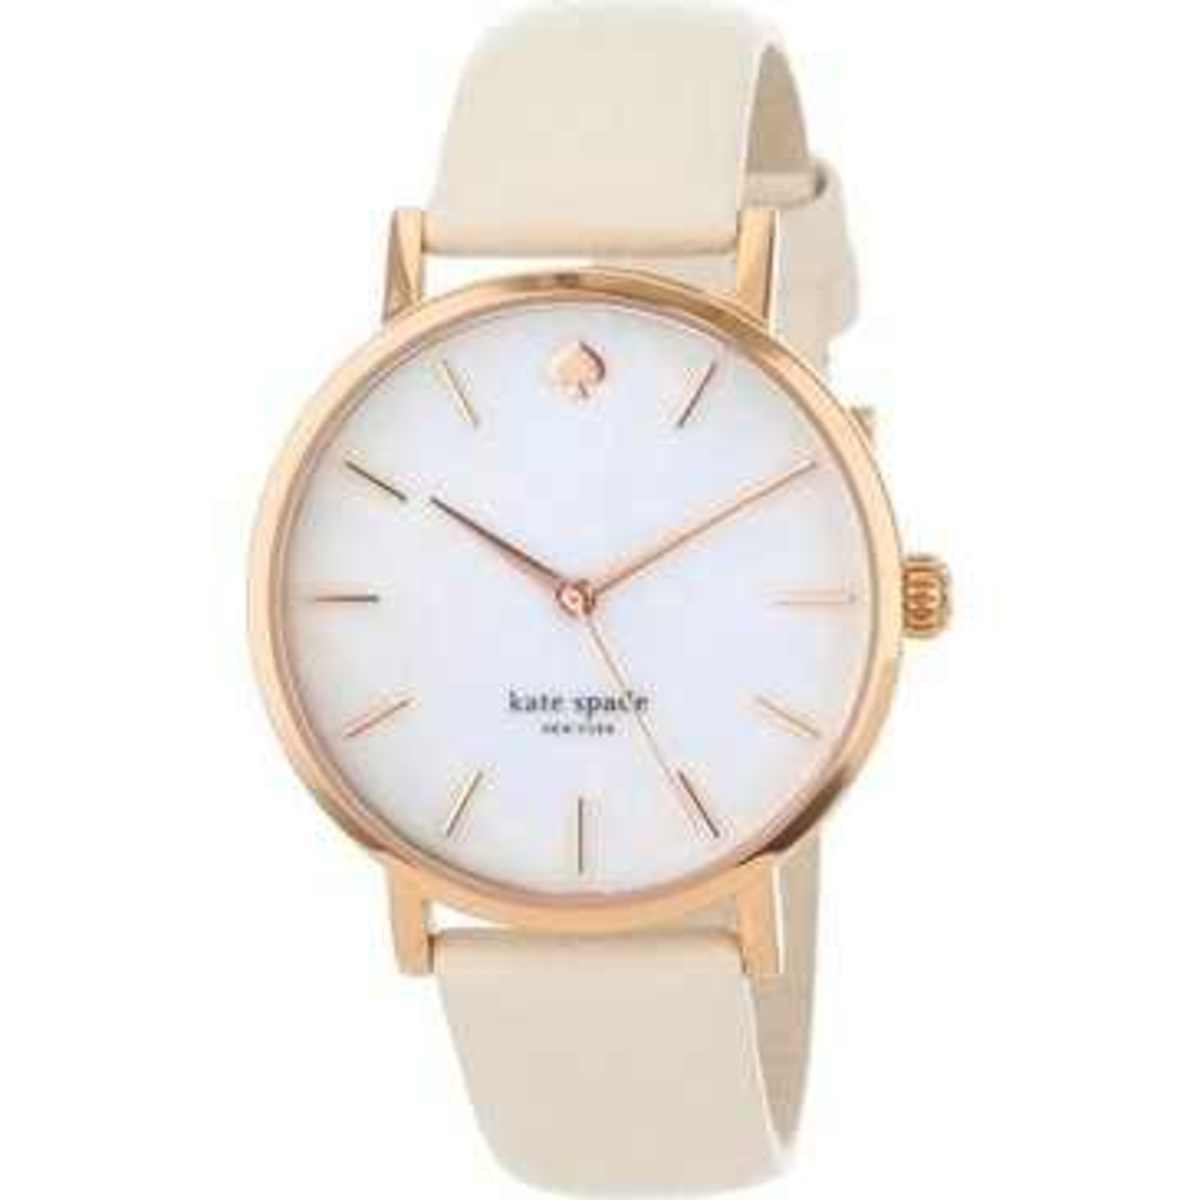 KATE SPADE NEW YORK CLASSIC METRO WATCH: